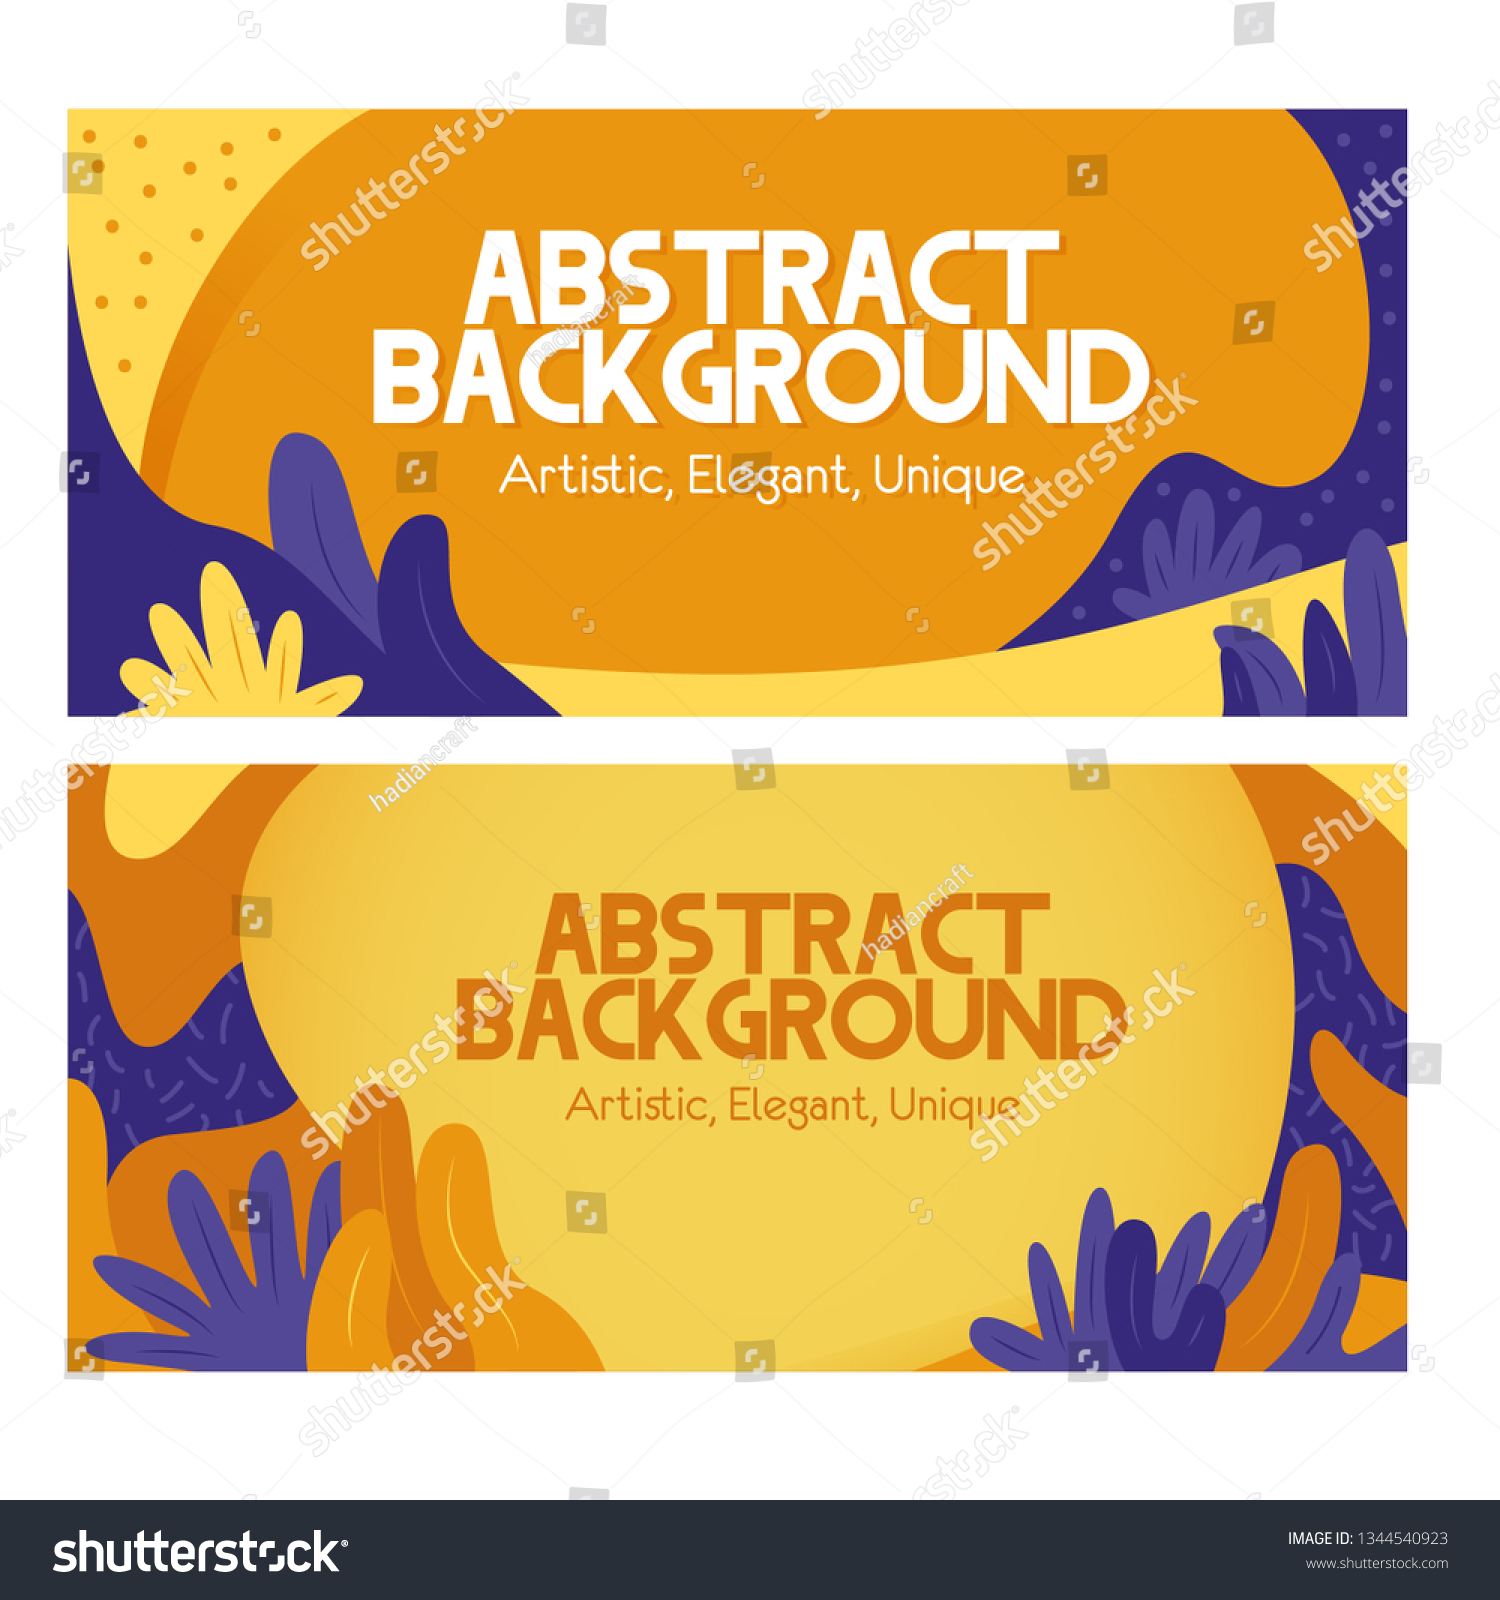 Aesthetic Abstract Background Template Blue Yellow Stock Vector Royalty Free 1344540923